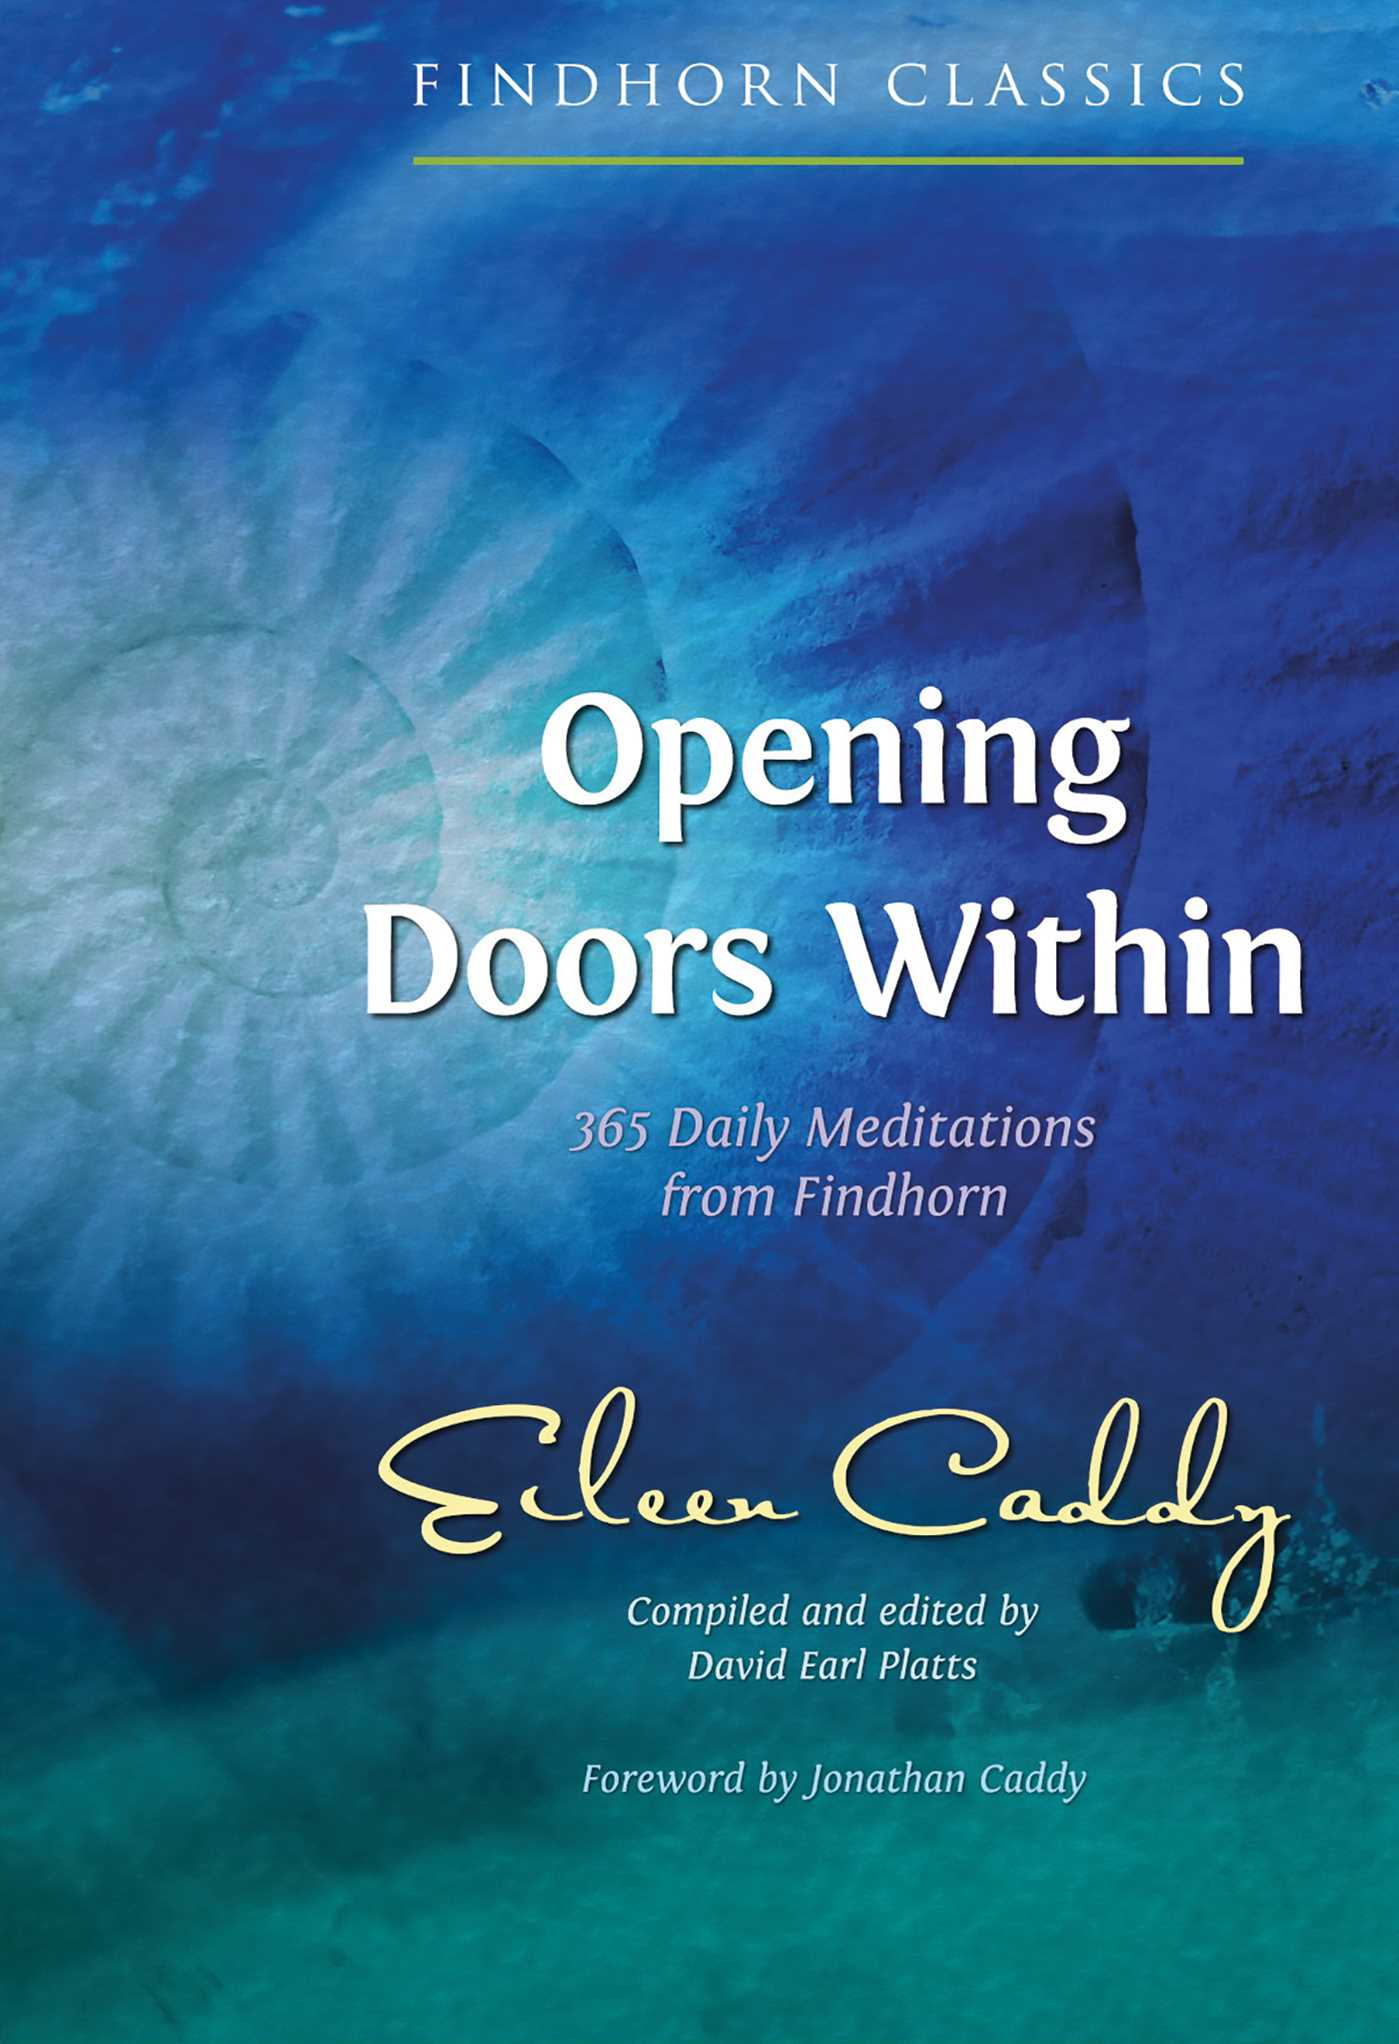 Opening Doors Within; Eileen Caddy